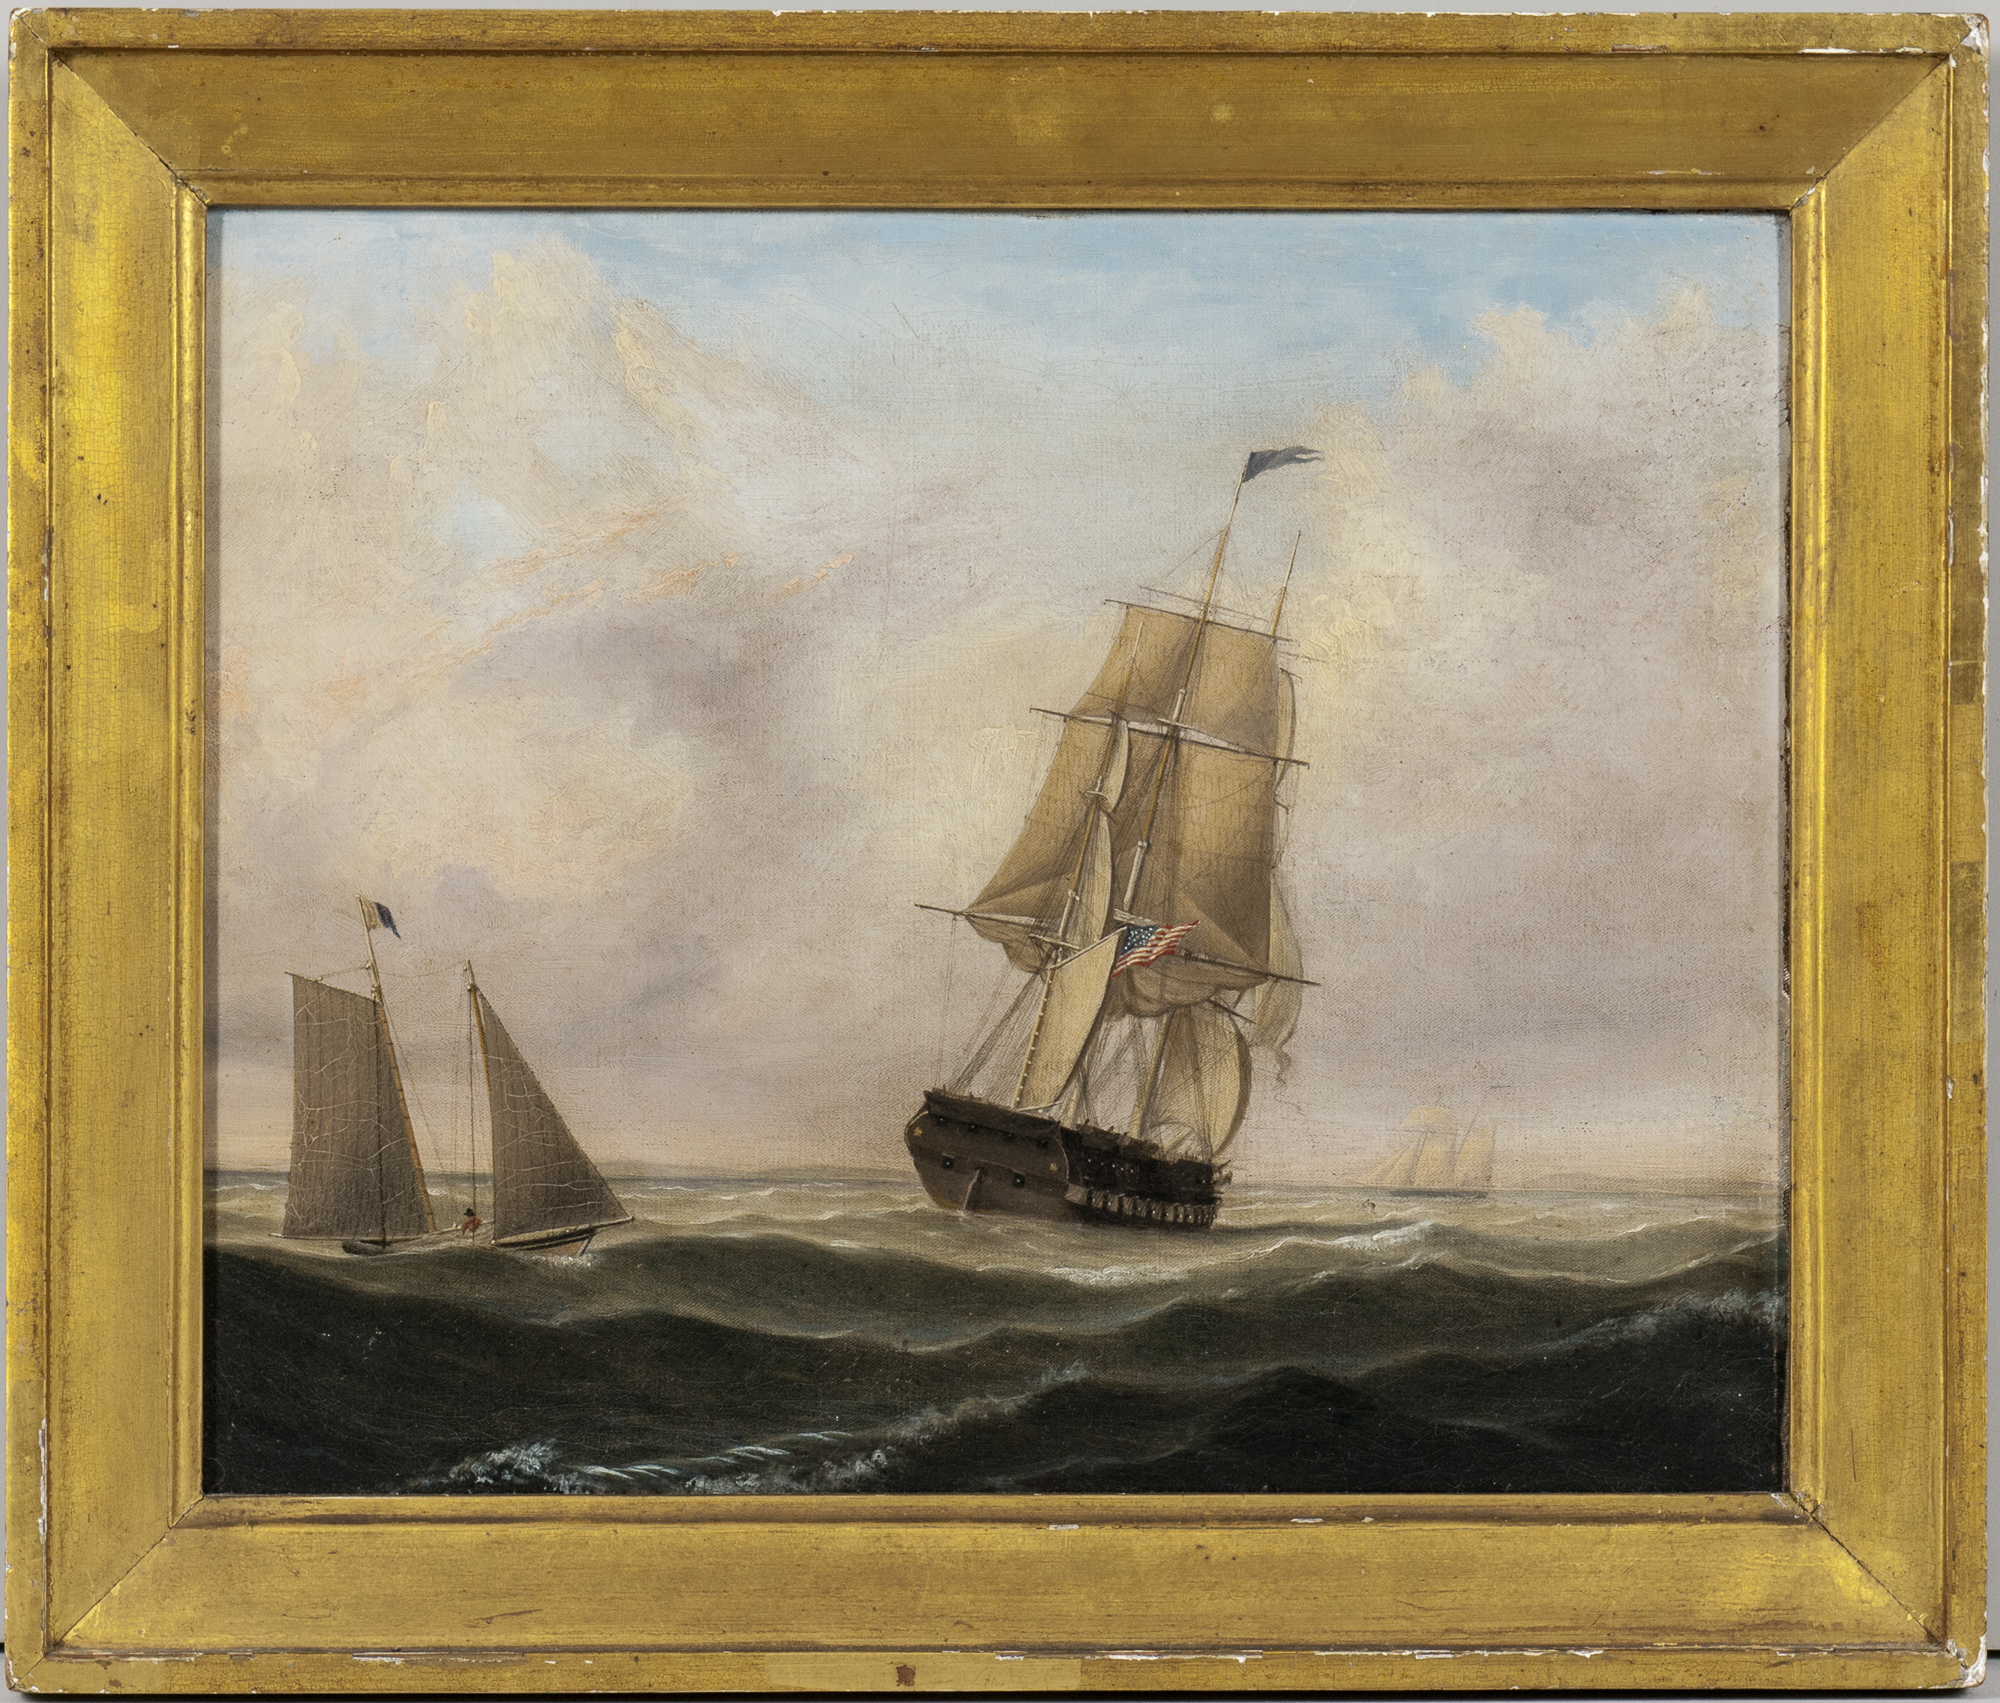 Fitz Henry Lane (Massachusetts, 1804-1865) Pair of Pendant Portraits of a Pilot Boat Alongside a Large Frigate (Lot 260, Estimate: $150,000-250,000)